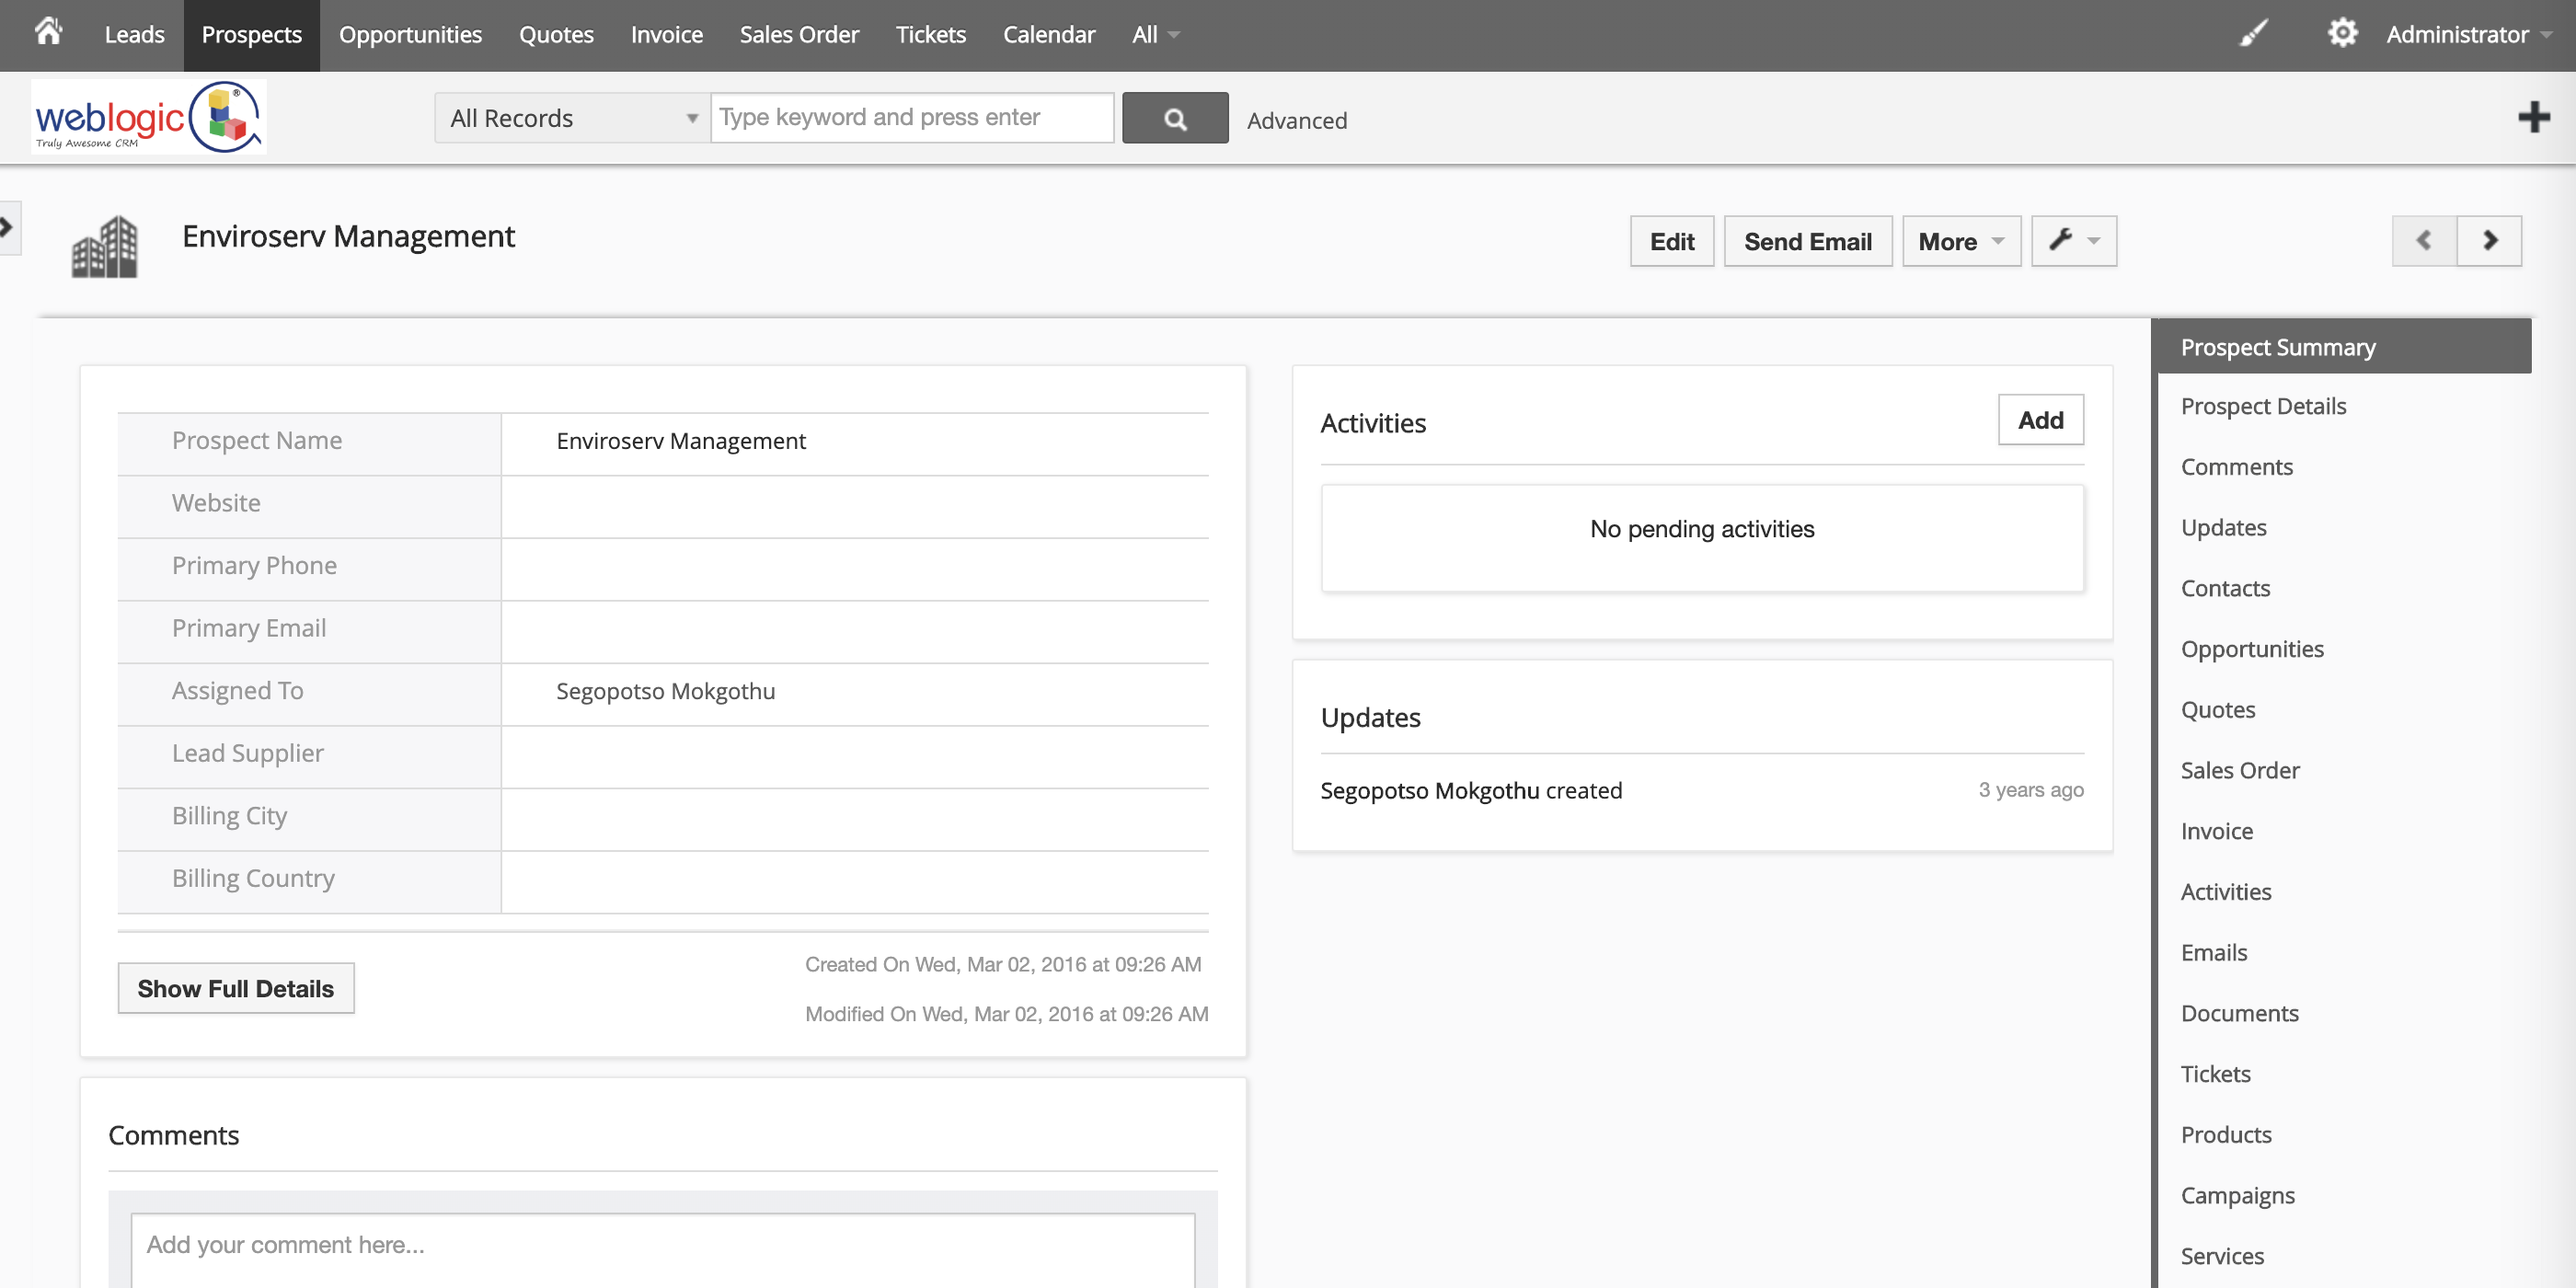 CRM Prospect Page